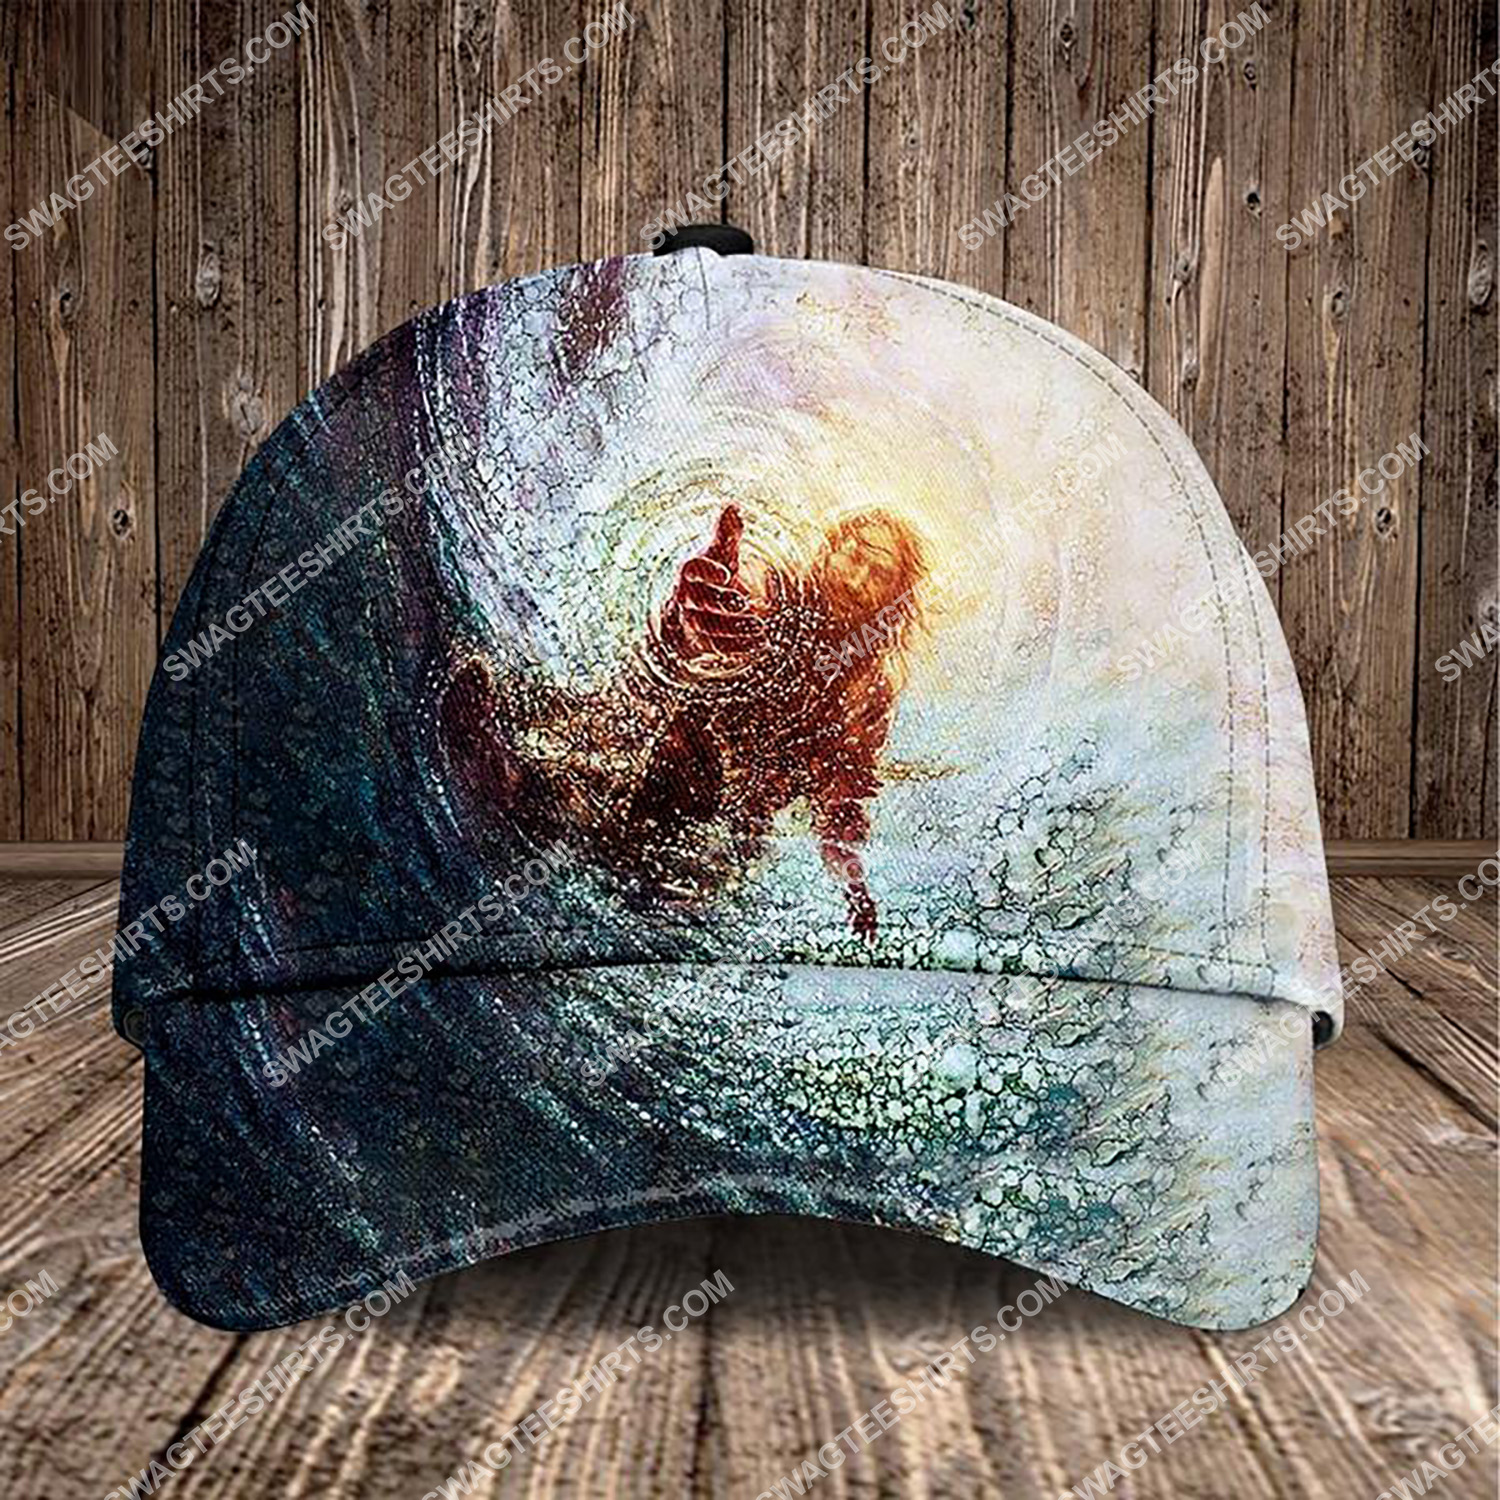 Jesus reaching into water all over printed classic cap 3 - Copy